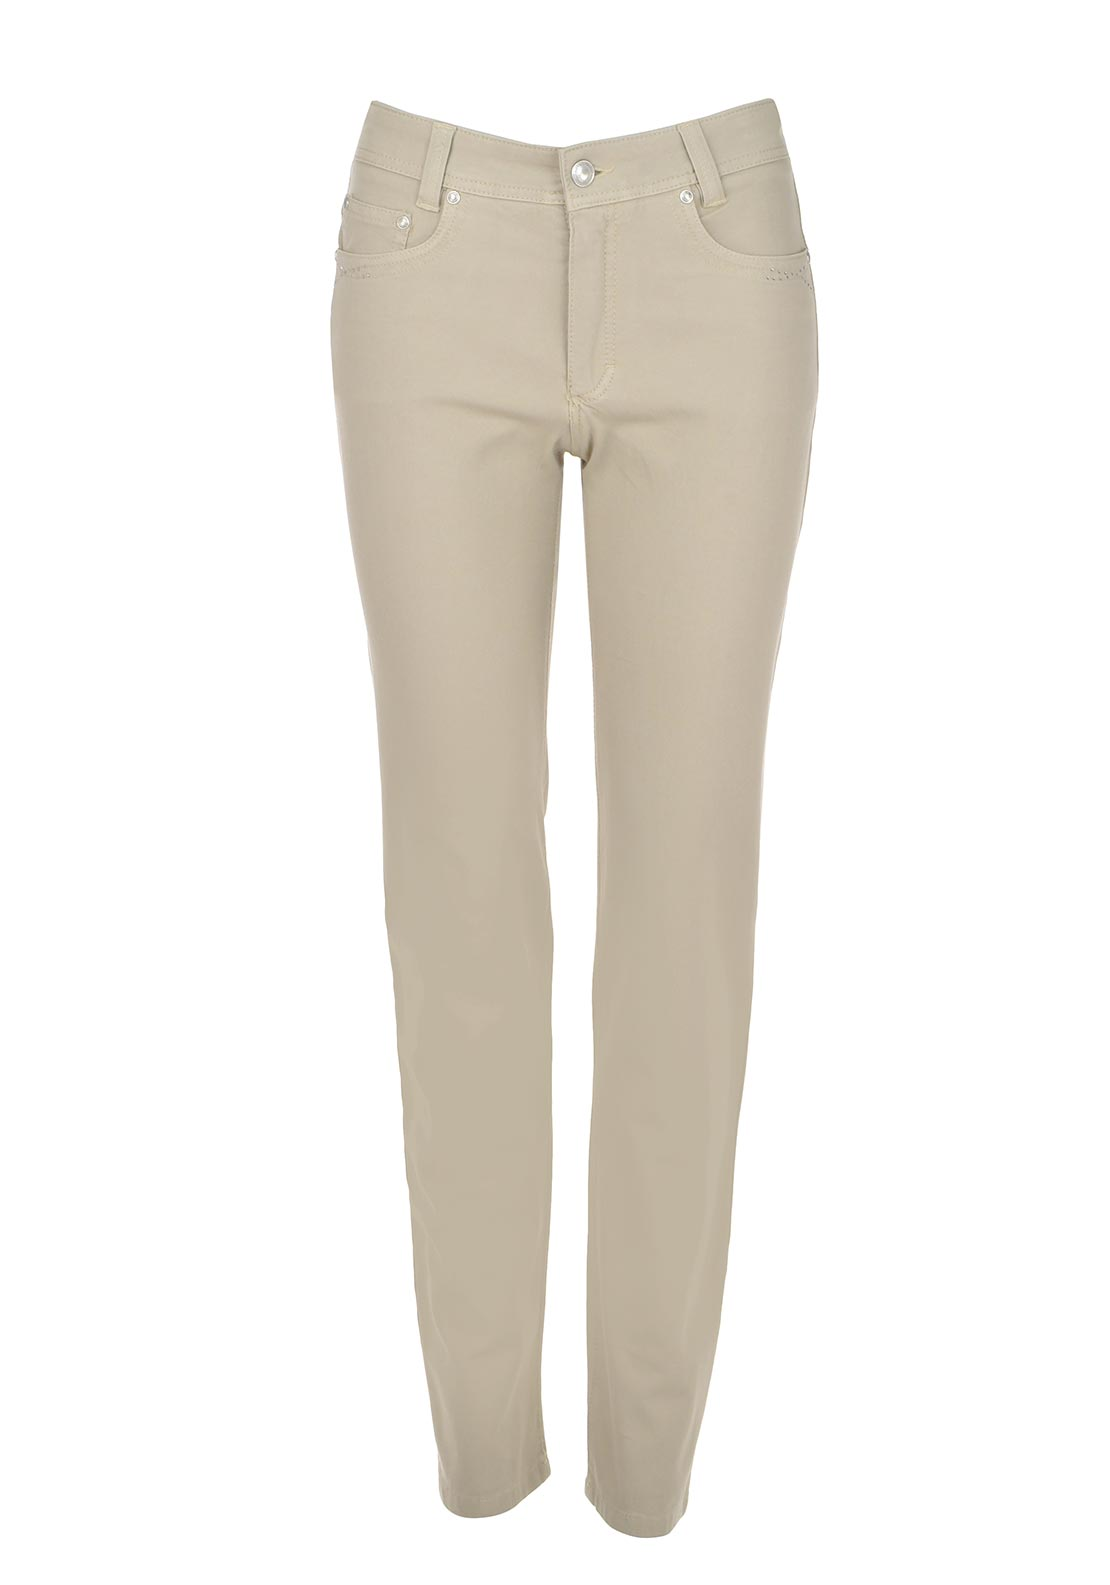 Anna Montana Angelika Magic Stretch Slim Leg Jeans, Beige